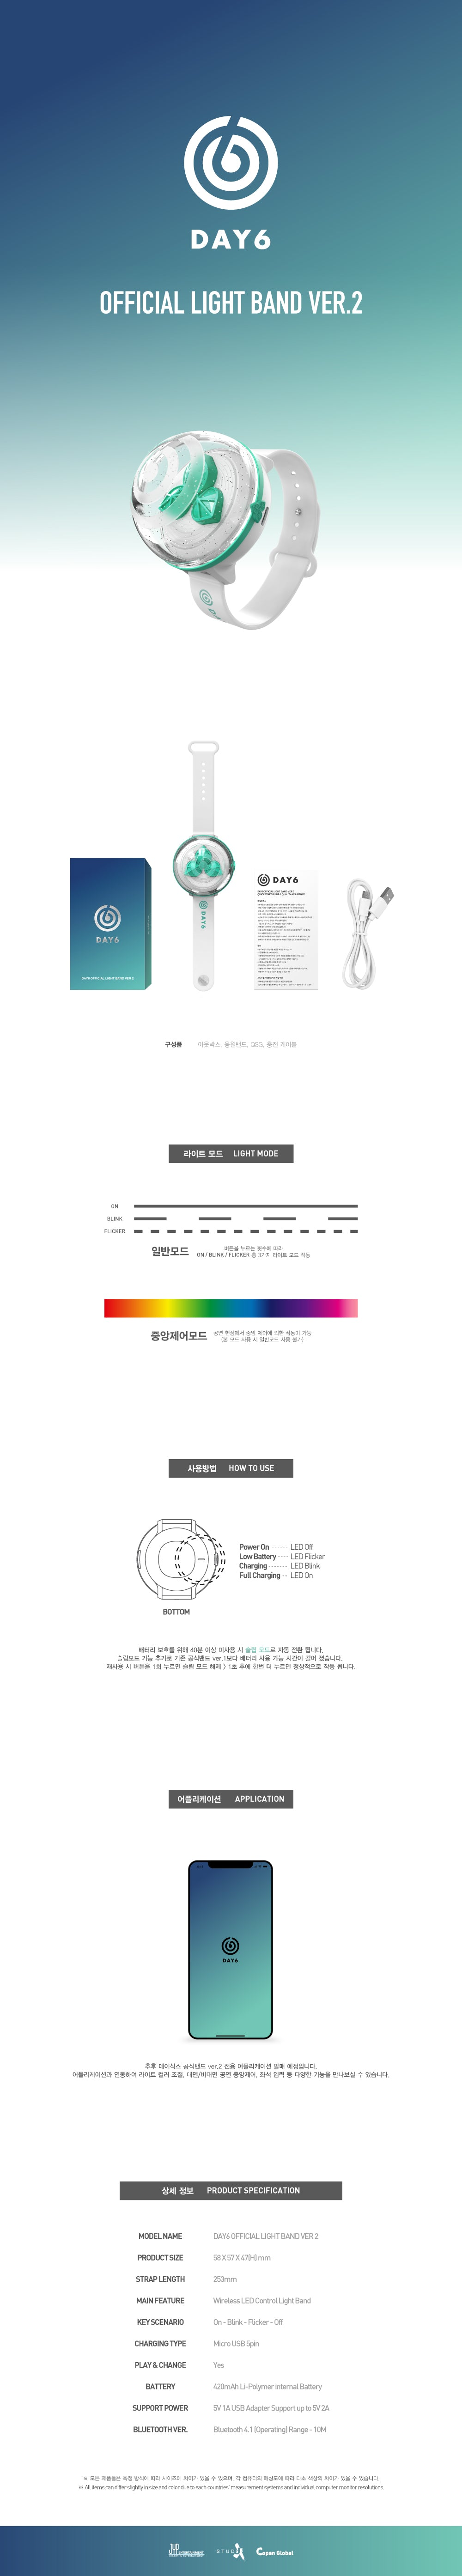 DAY6 Official Light Band Ver.2 (2020 Winter Edition)